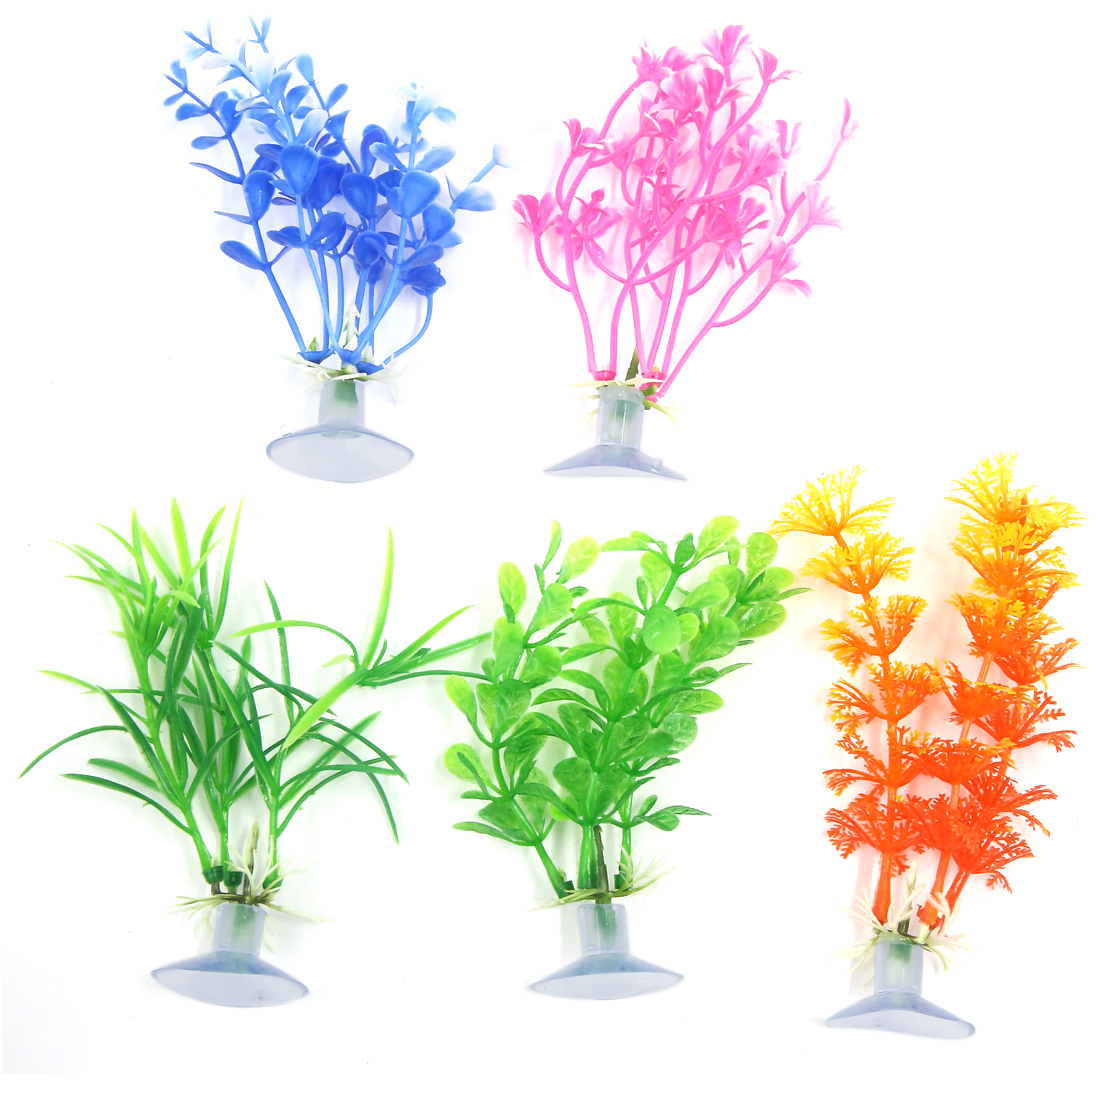 5 Pcs Aquarium Ornament Plastic Decoration Plant With Suction Cup 10cm